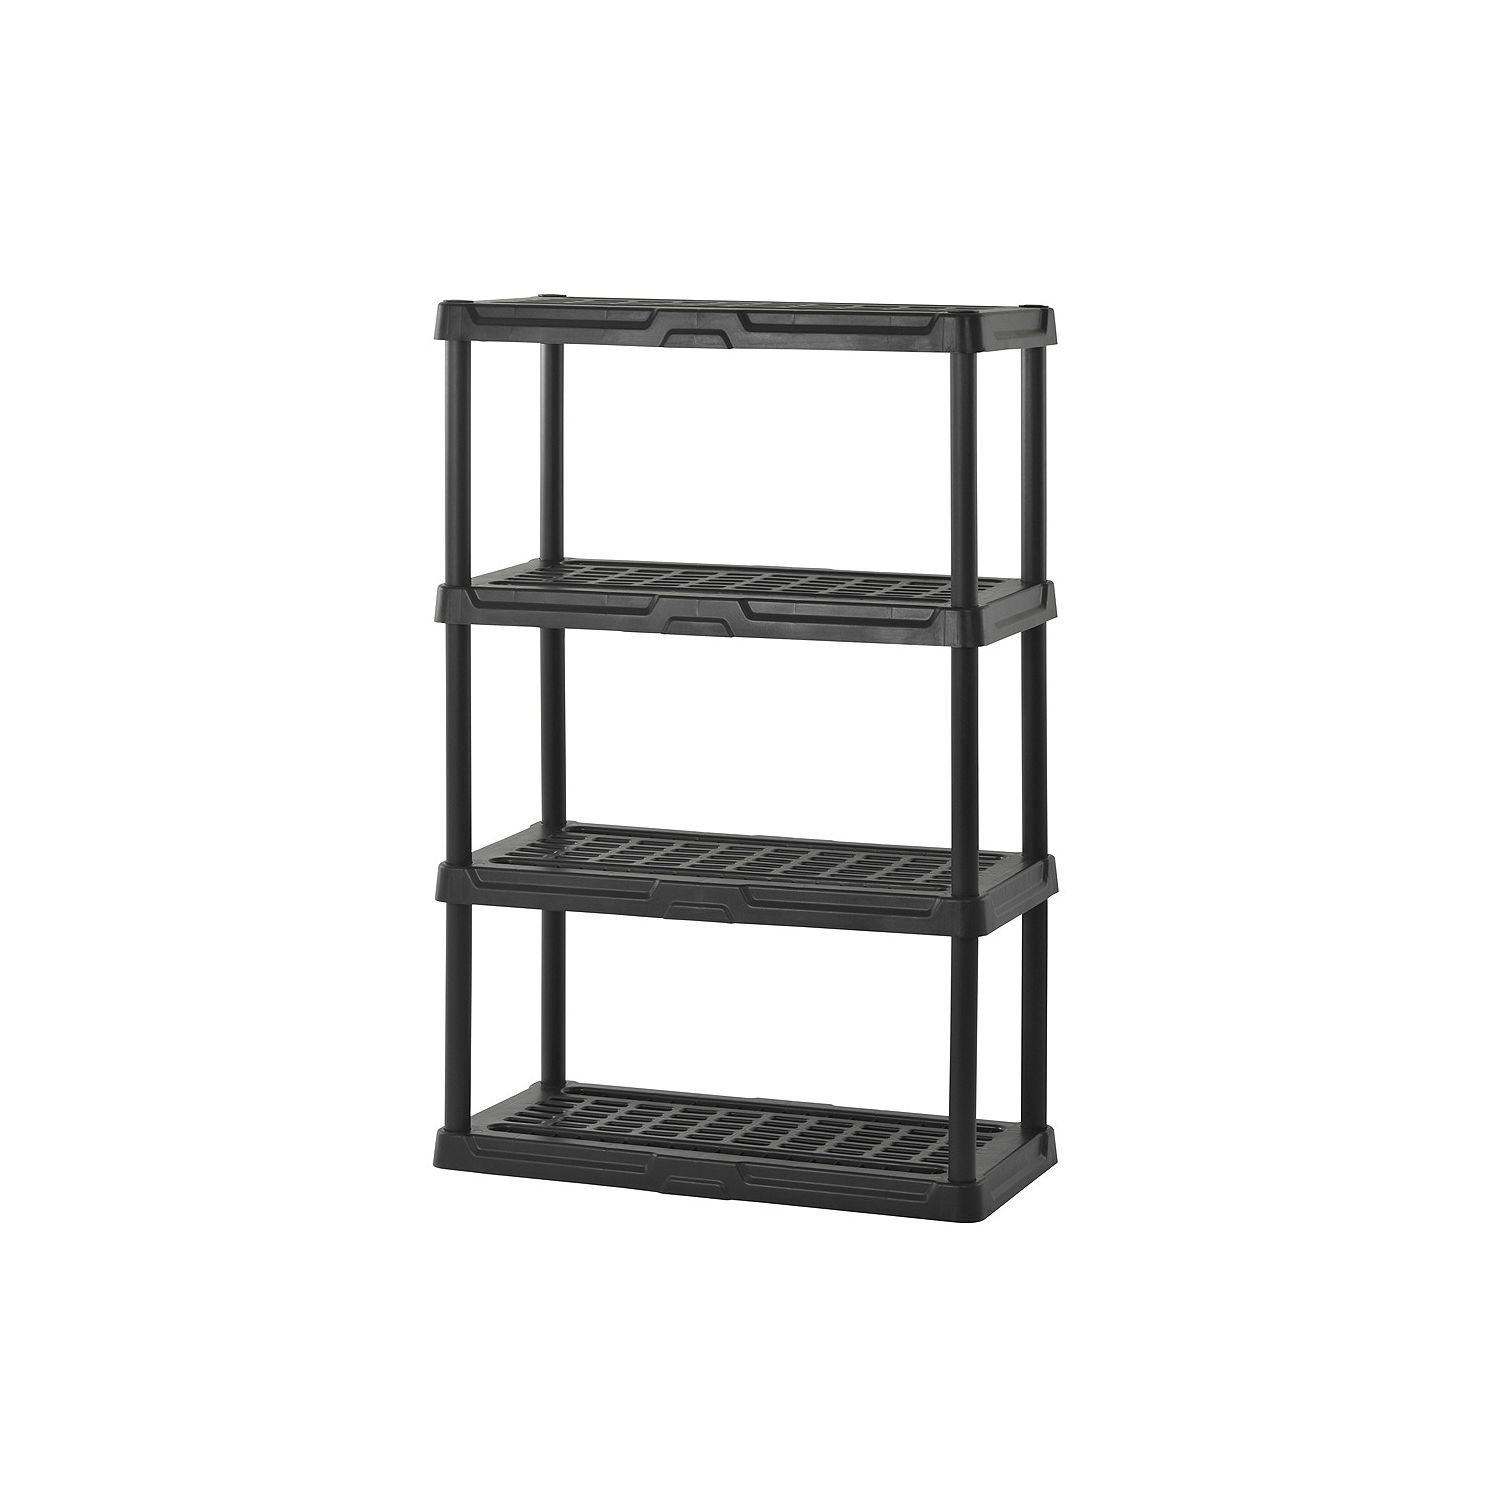 Surprising Product Of Sandusky 4 Level Resin Shelving Black 36 X 18 Alphanode Cool Chair Designs And Ideas Alphanodeonline